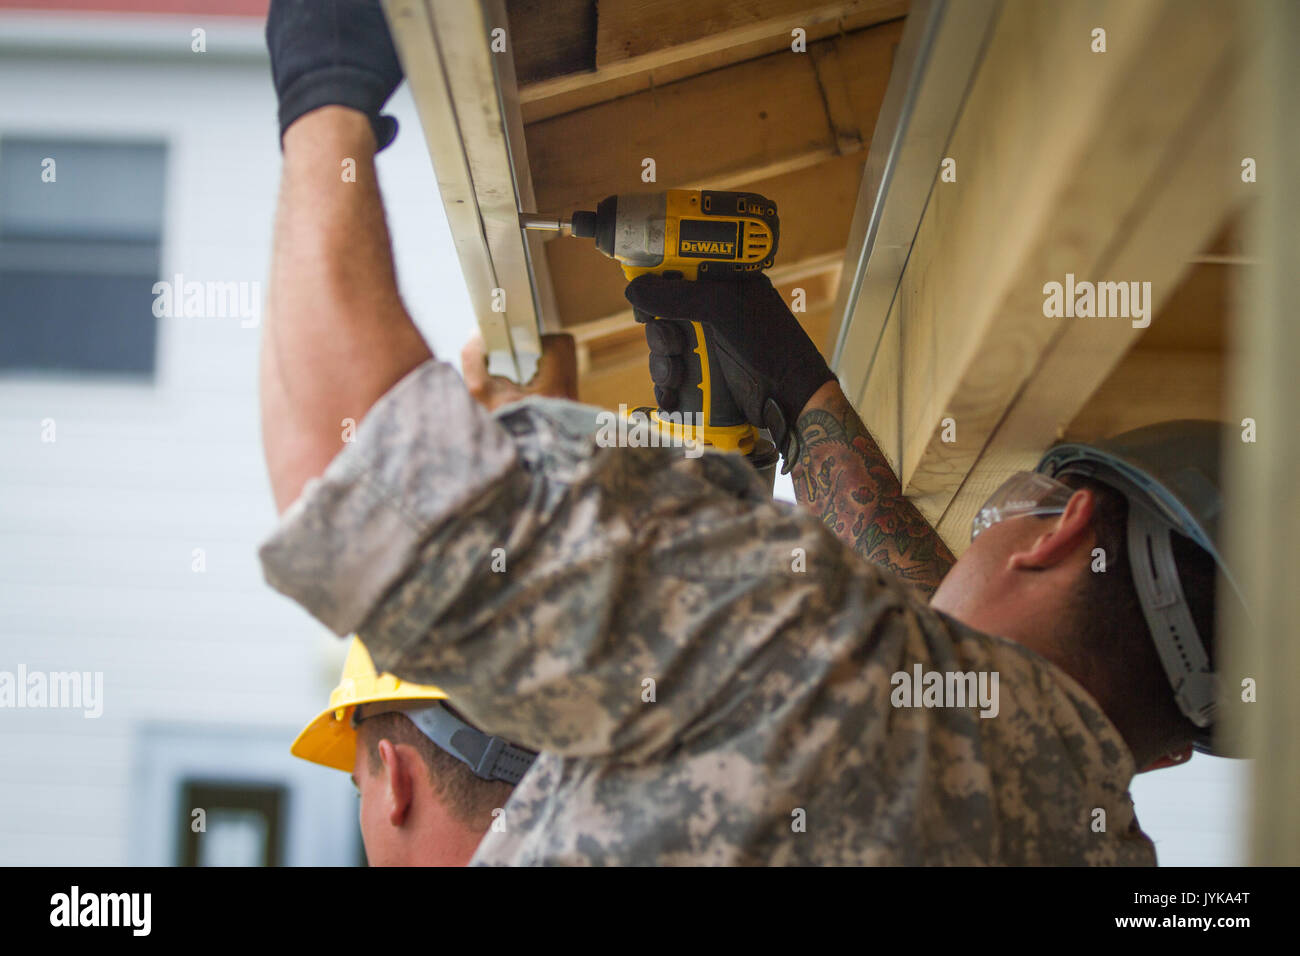 833rd aero squadron - U S Army Spc Timoteo Fademholz 486th Engineering Company Works On The Installation Of